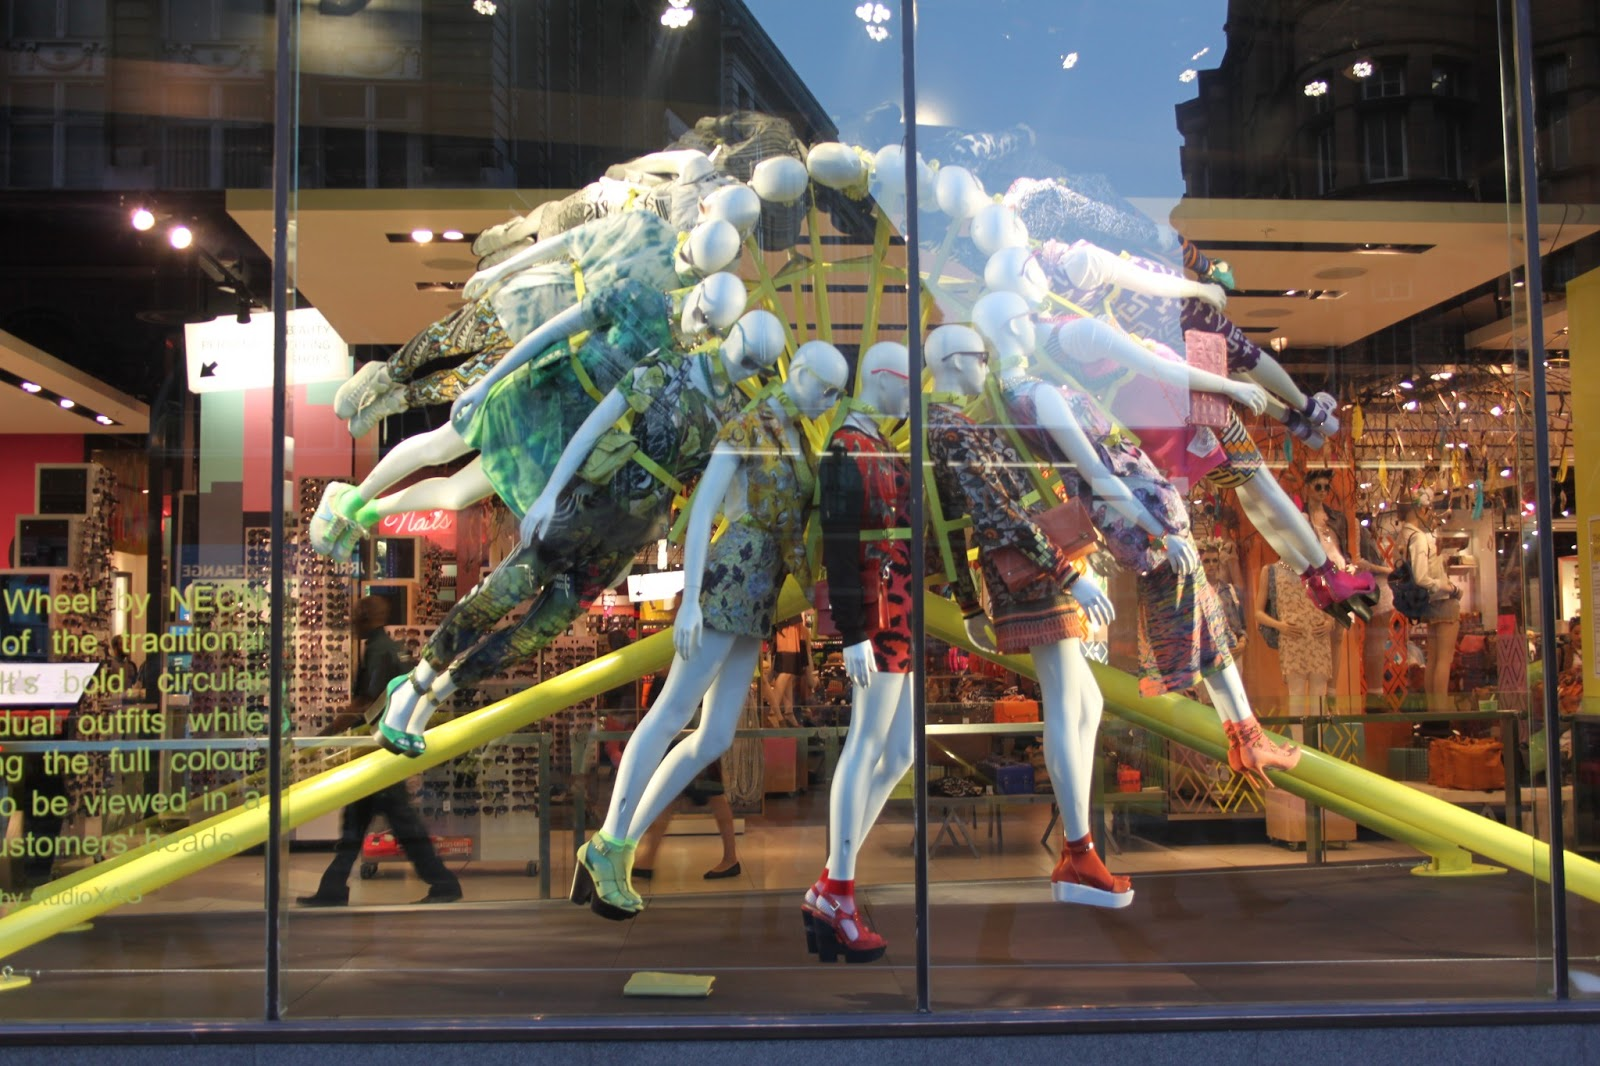 The regent street windows project 2012 - Topshop Neon Store Window I Don T Normally Do Posts As Such But I Truly Love Visual Merchandising Window Dressing And I Was Excited To See What All